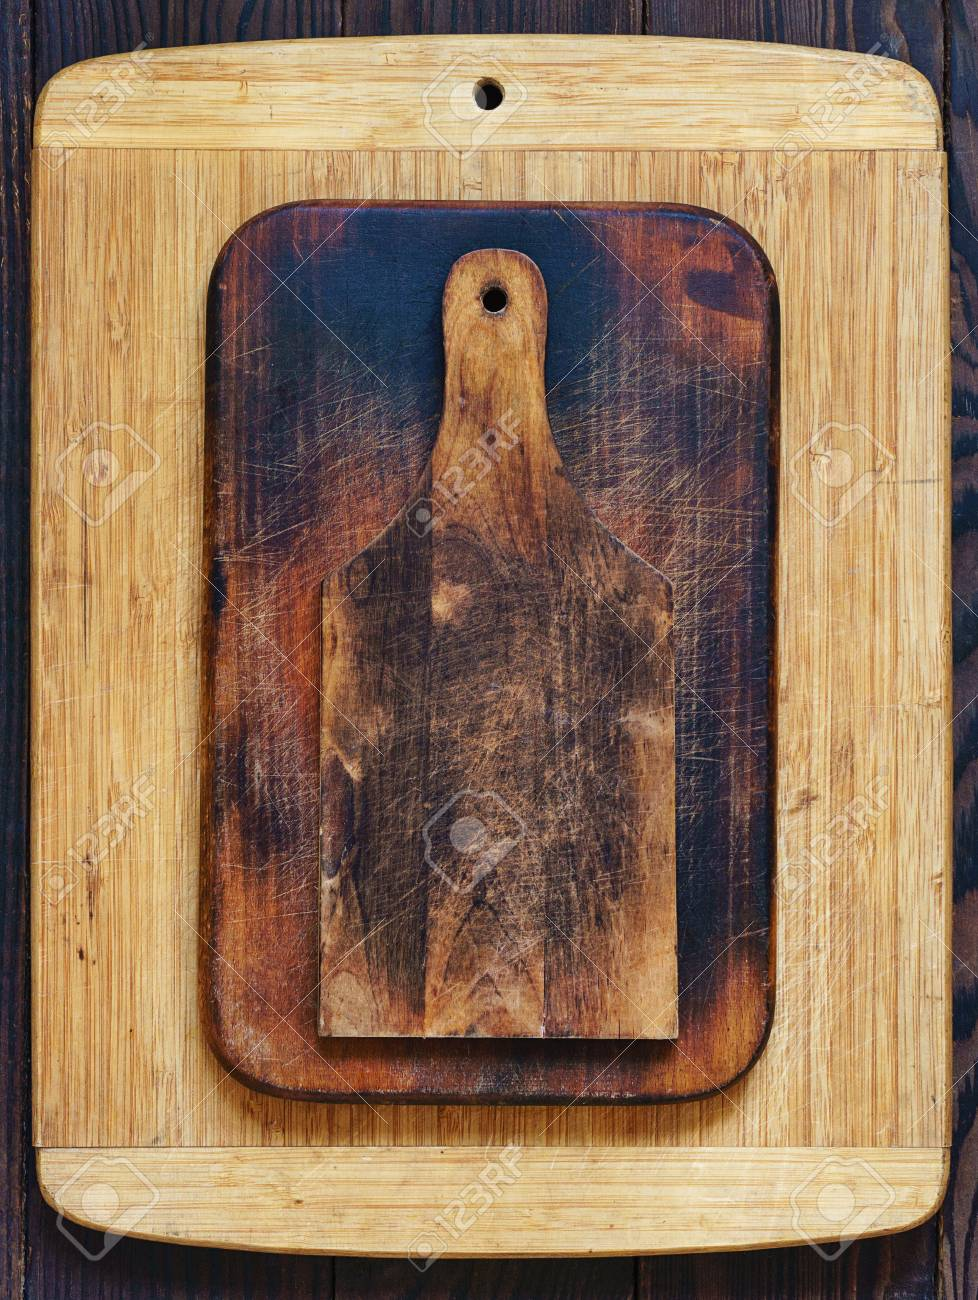 Wooden Cutting Boards Of Various Sizes And Shapes Stock Photo Picture And Royalty Free Image Image 111513997